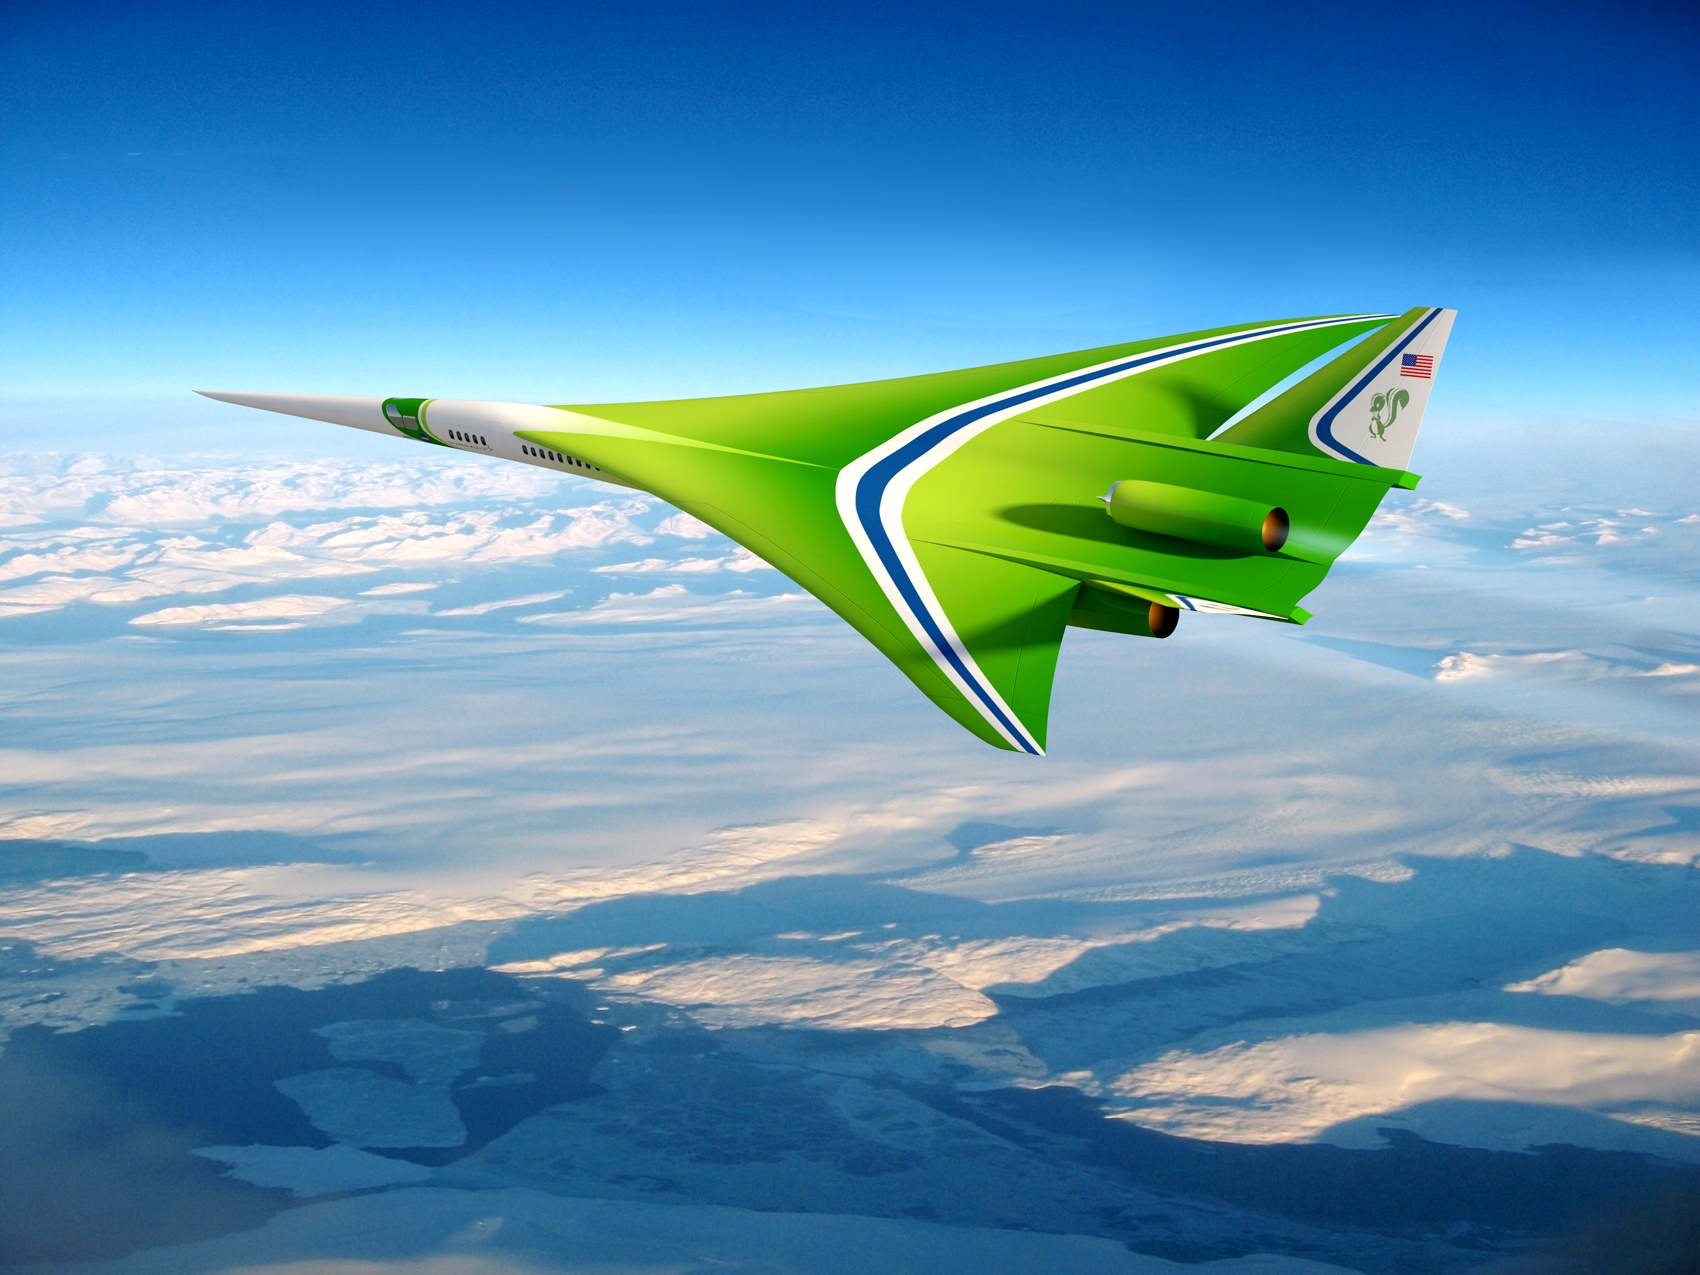 future of passenger aircraft essay An 18-month nasa research effort to visualize the passenger airplanes of the  future has produced some ideas that at first glance may appear.